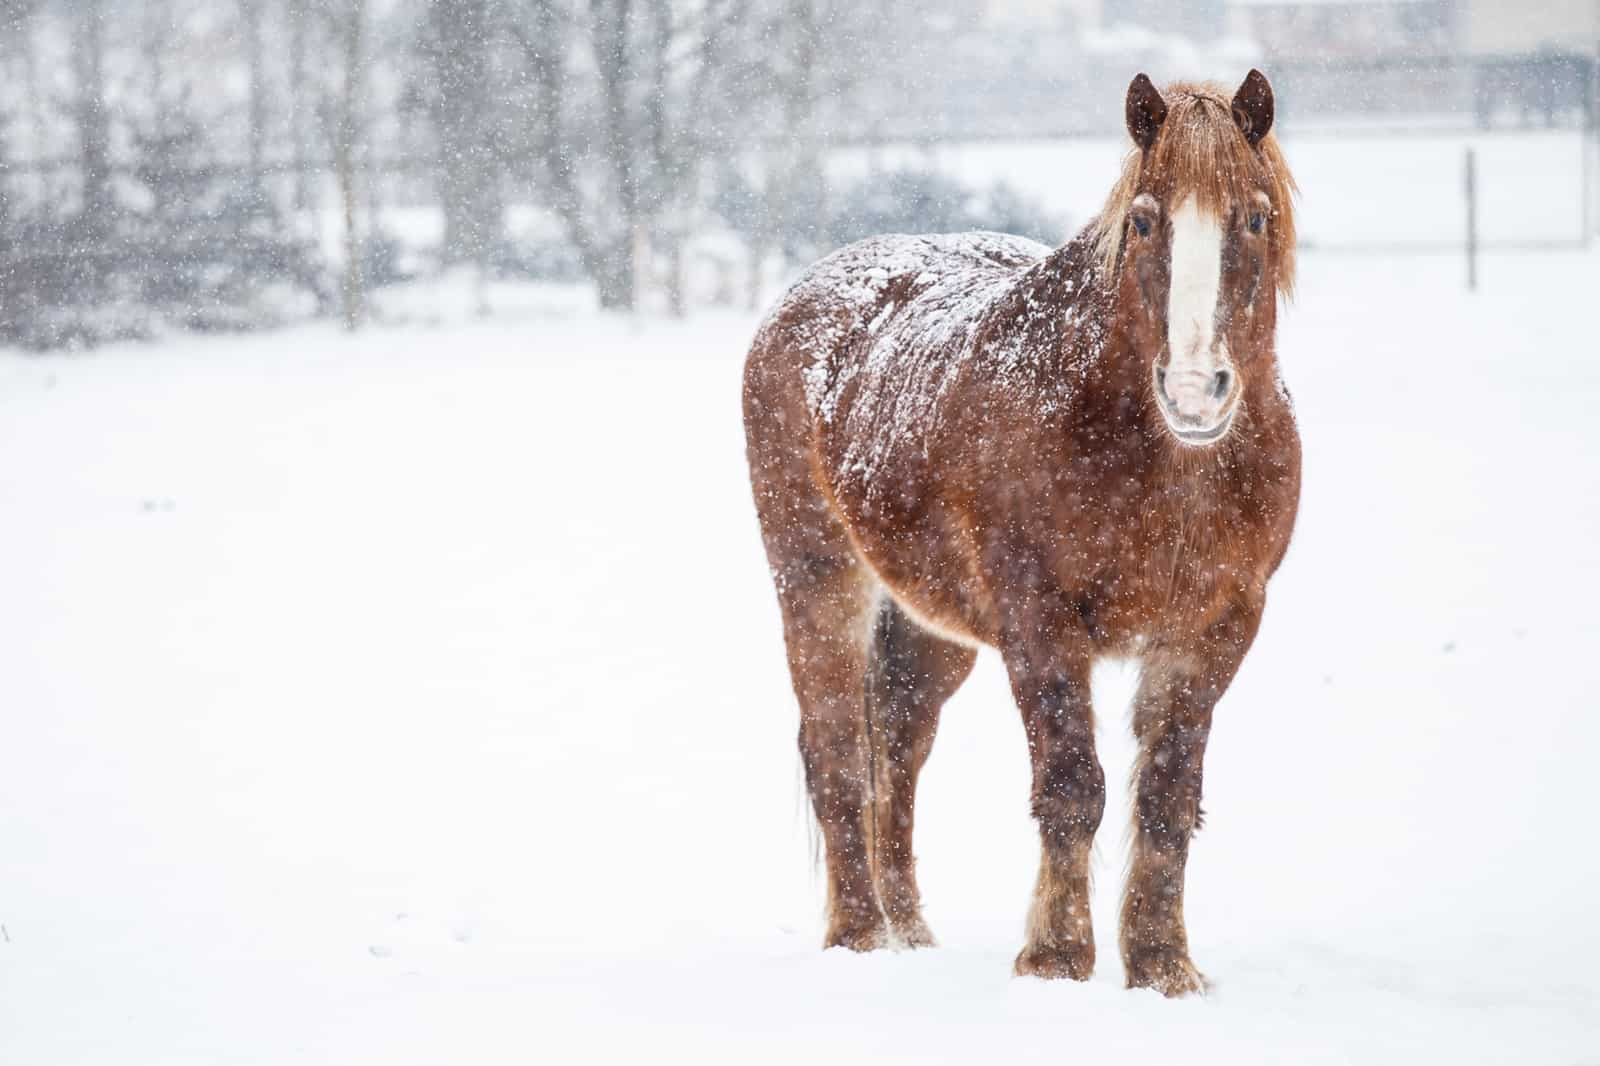 Senior Horses in Cold Weather – The Horse